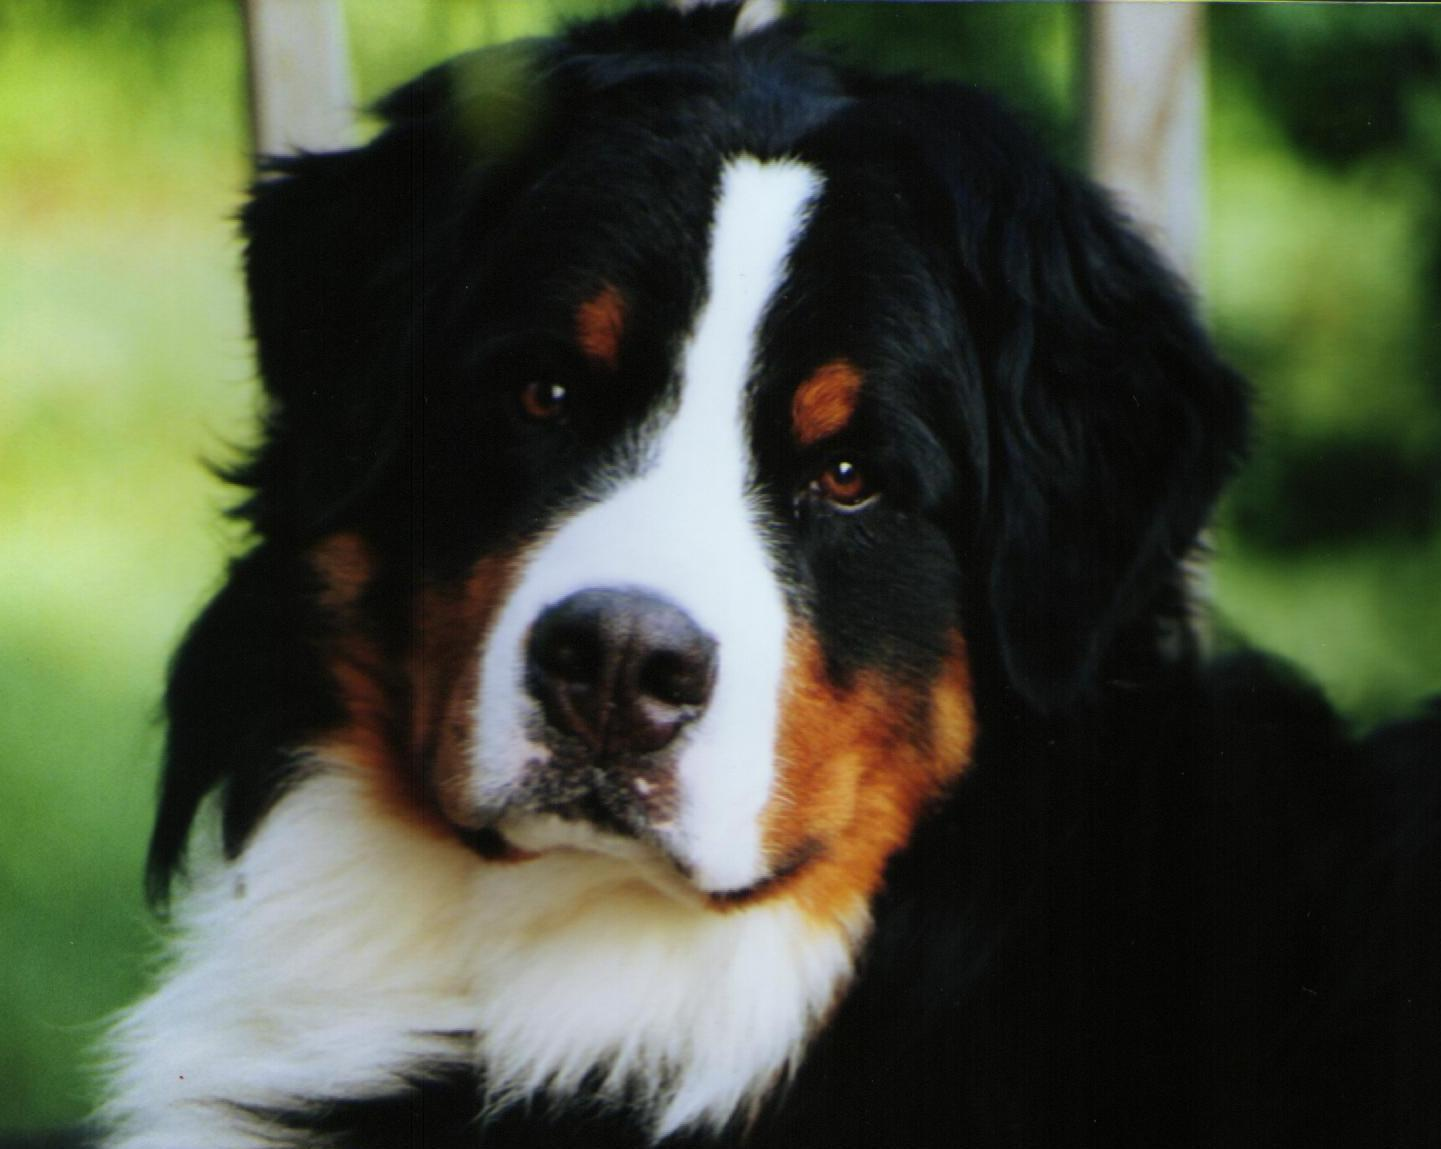 The dog in world: Bernese Mountain Dogs